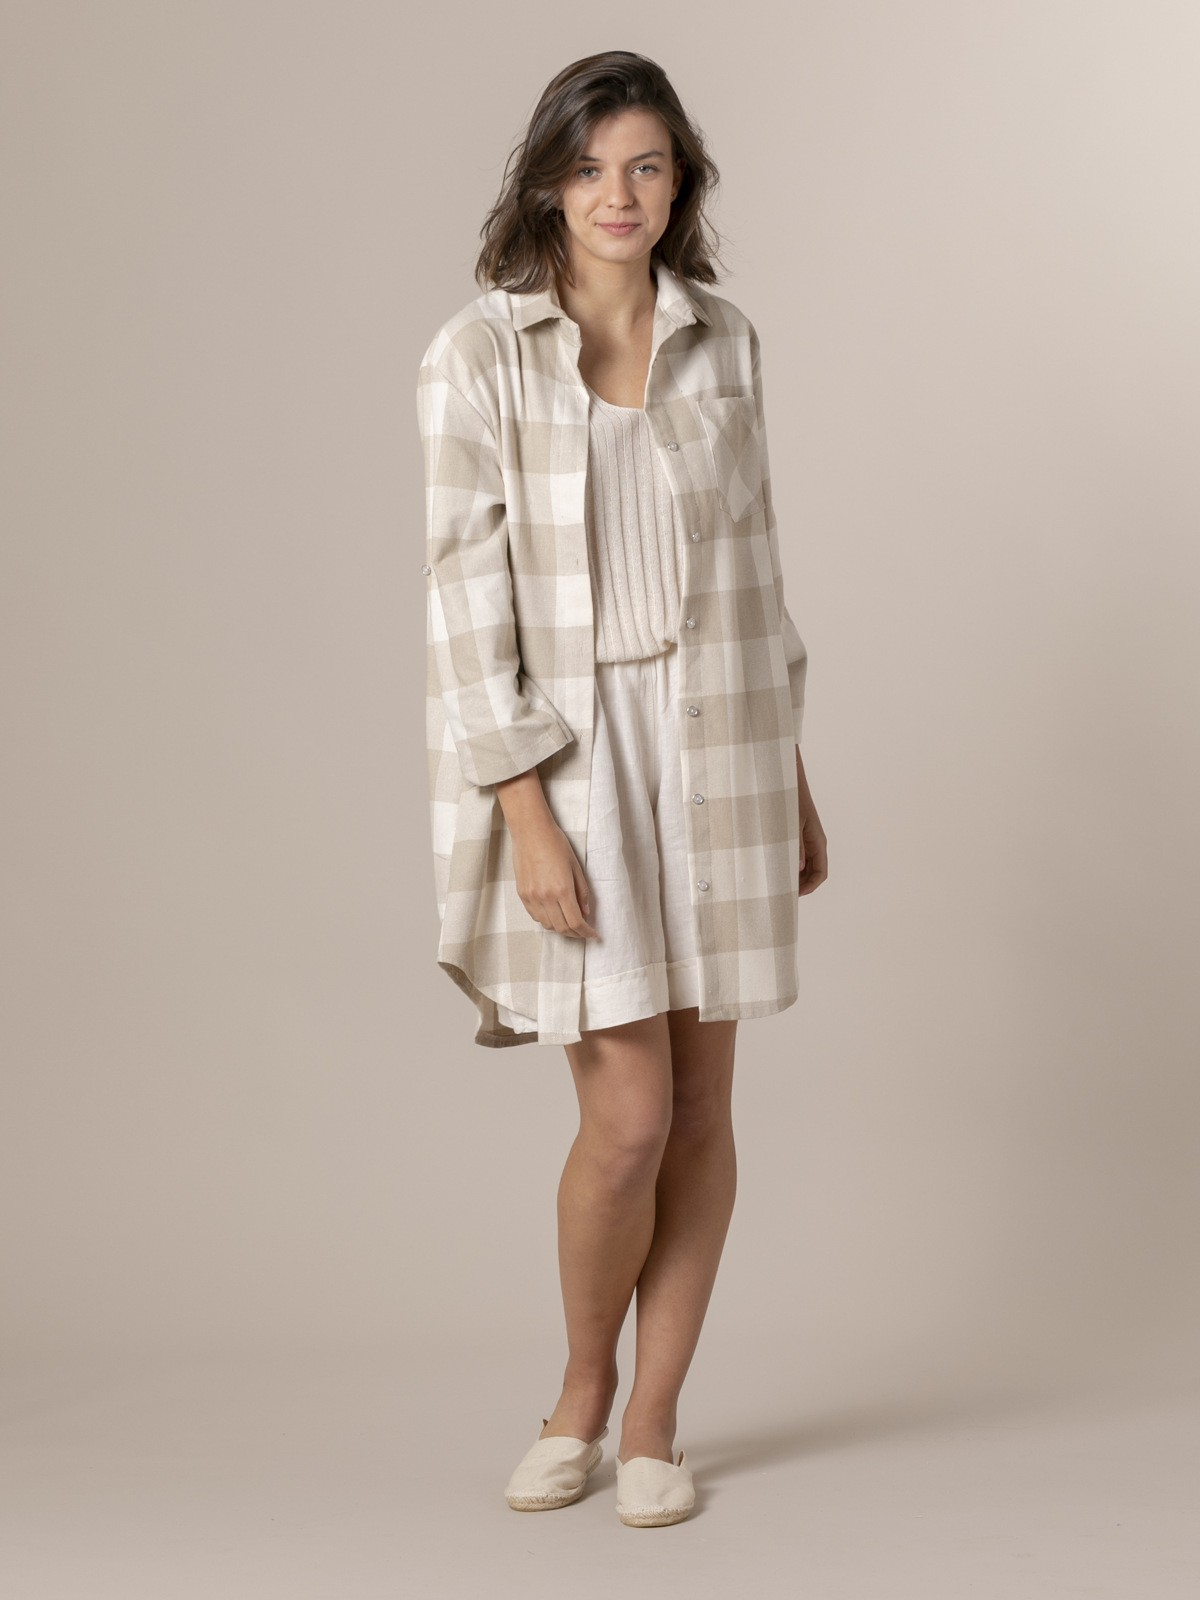 Woman Woman Plaid ecru background shirt Beige